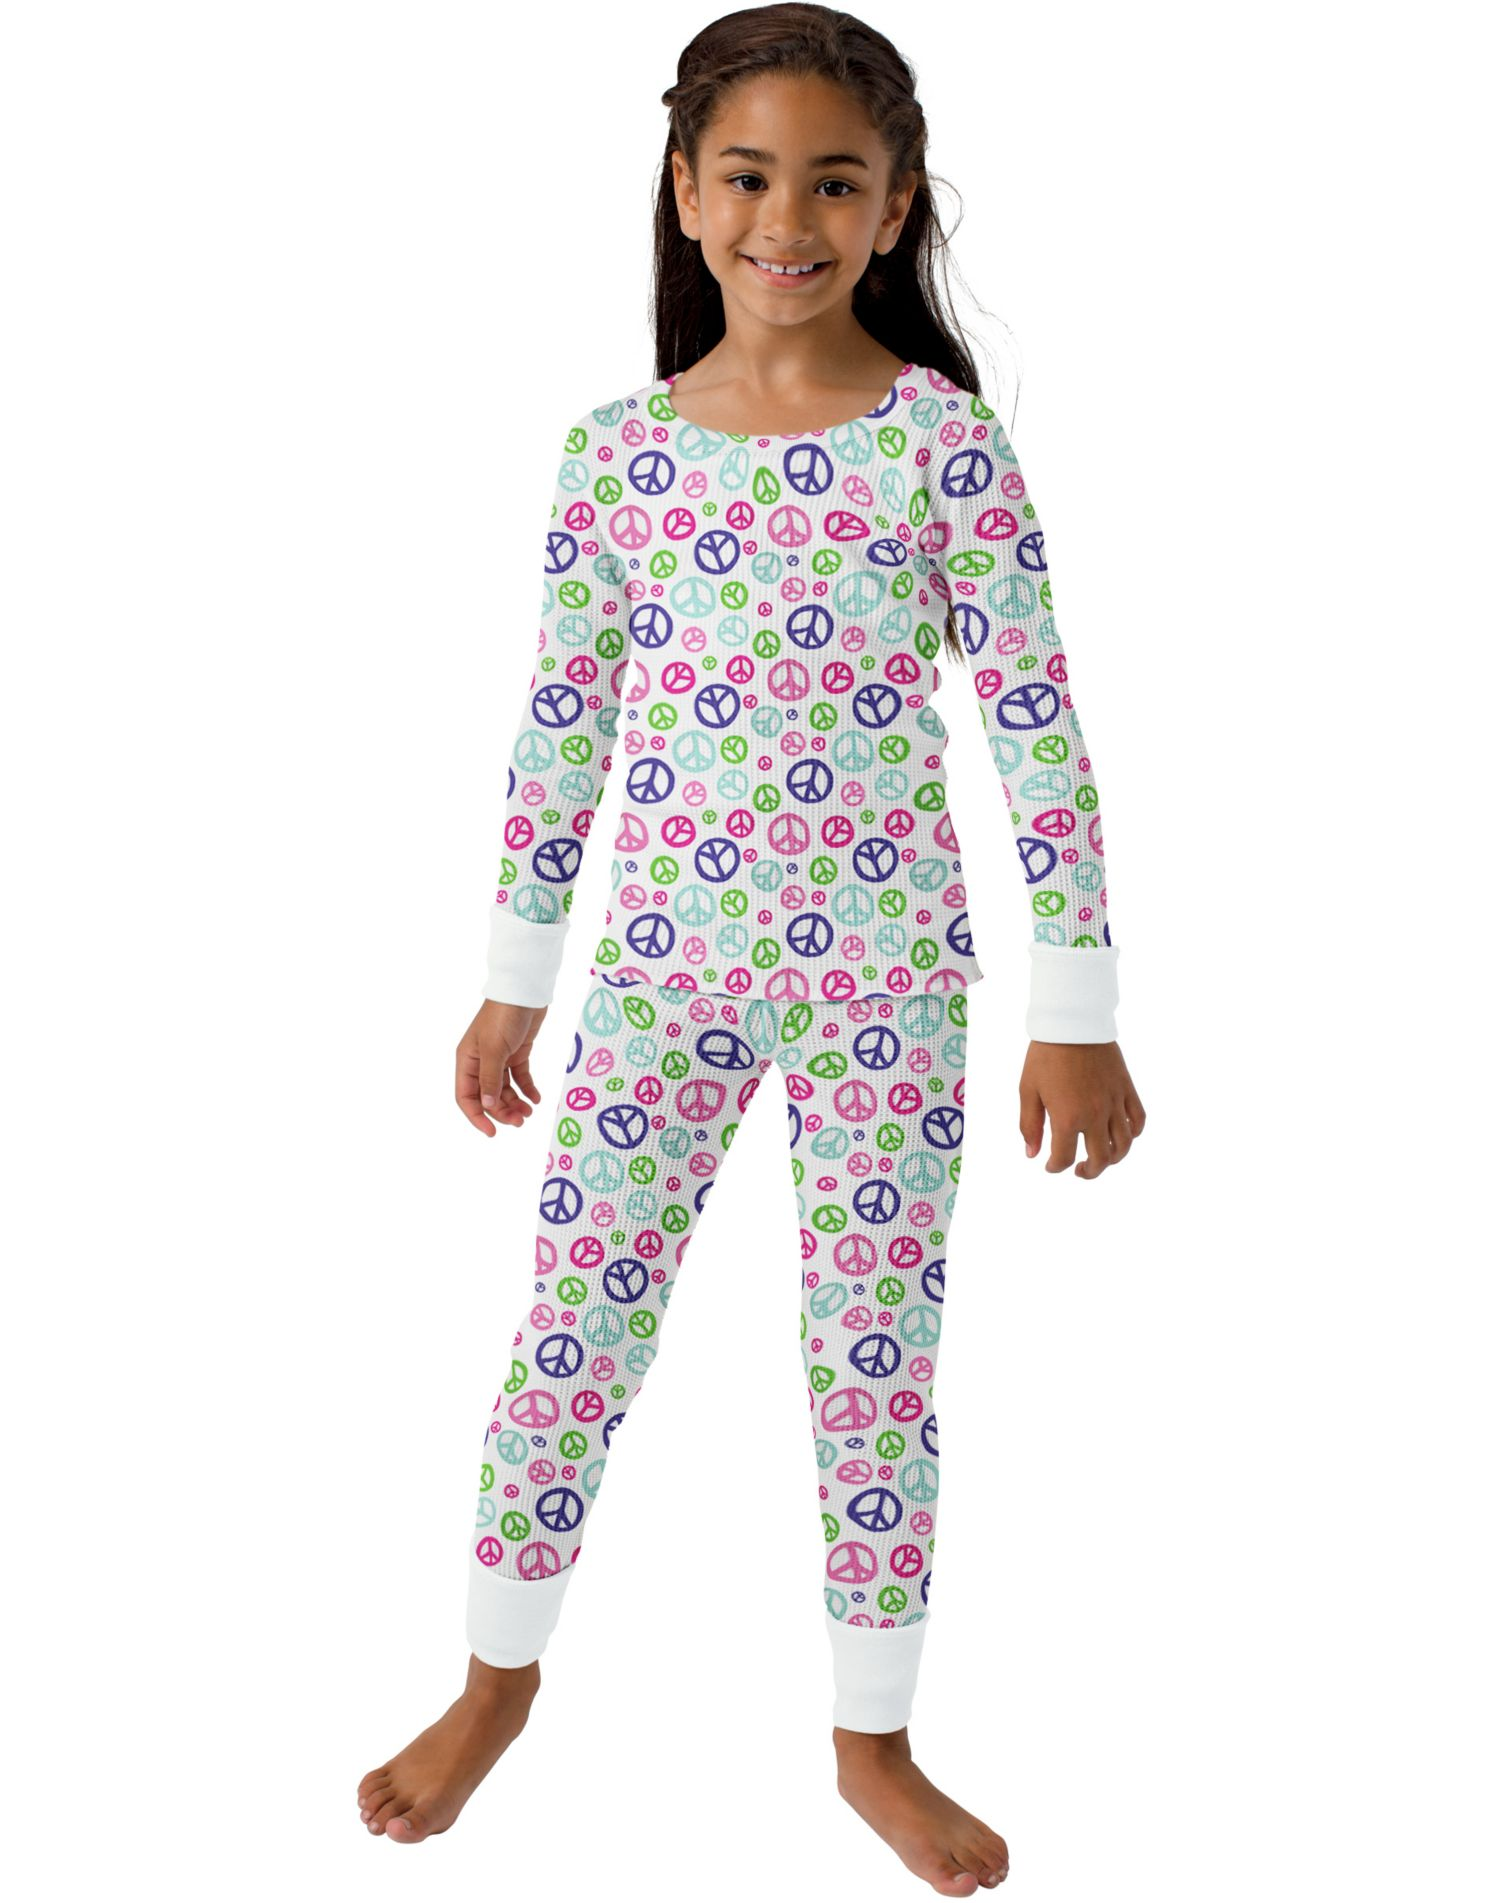 Hanes 24104 - Printed Girls' Thermal Underwear Set